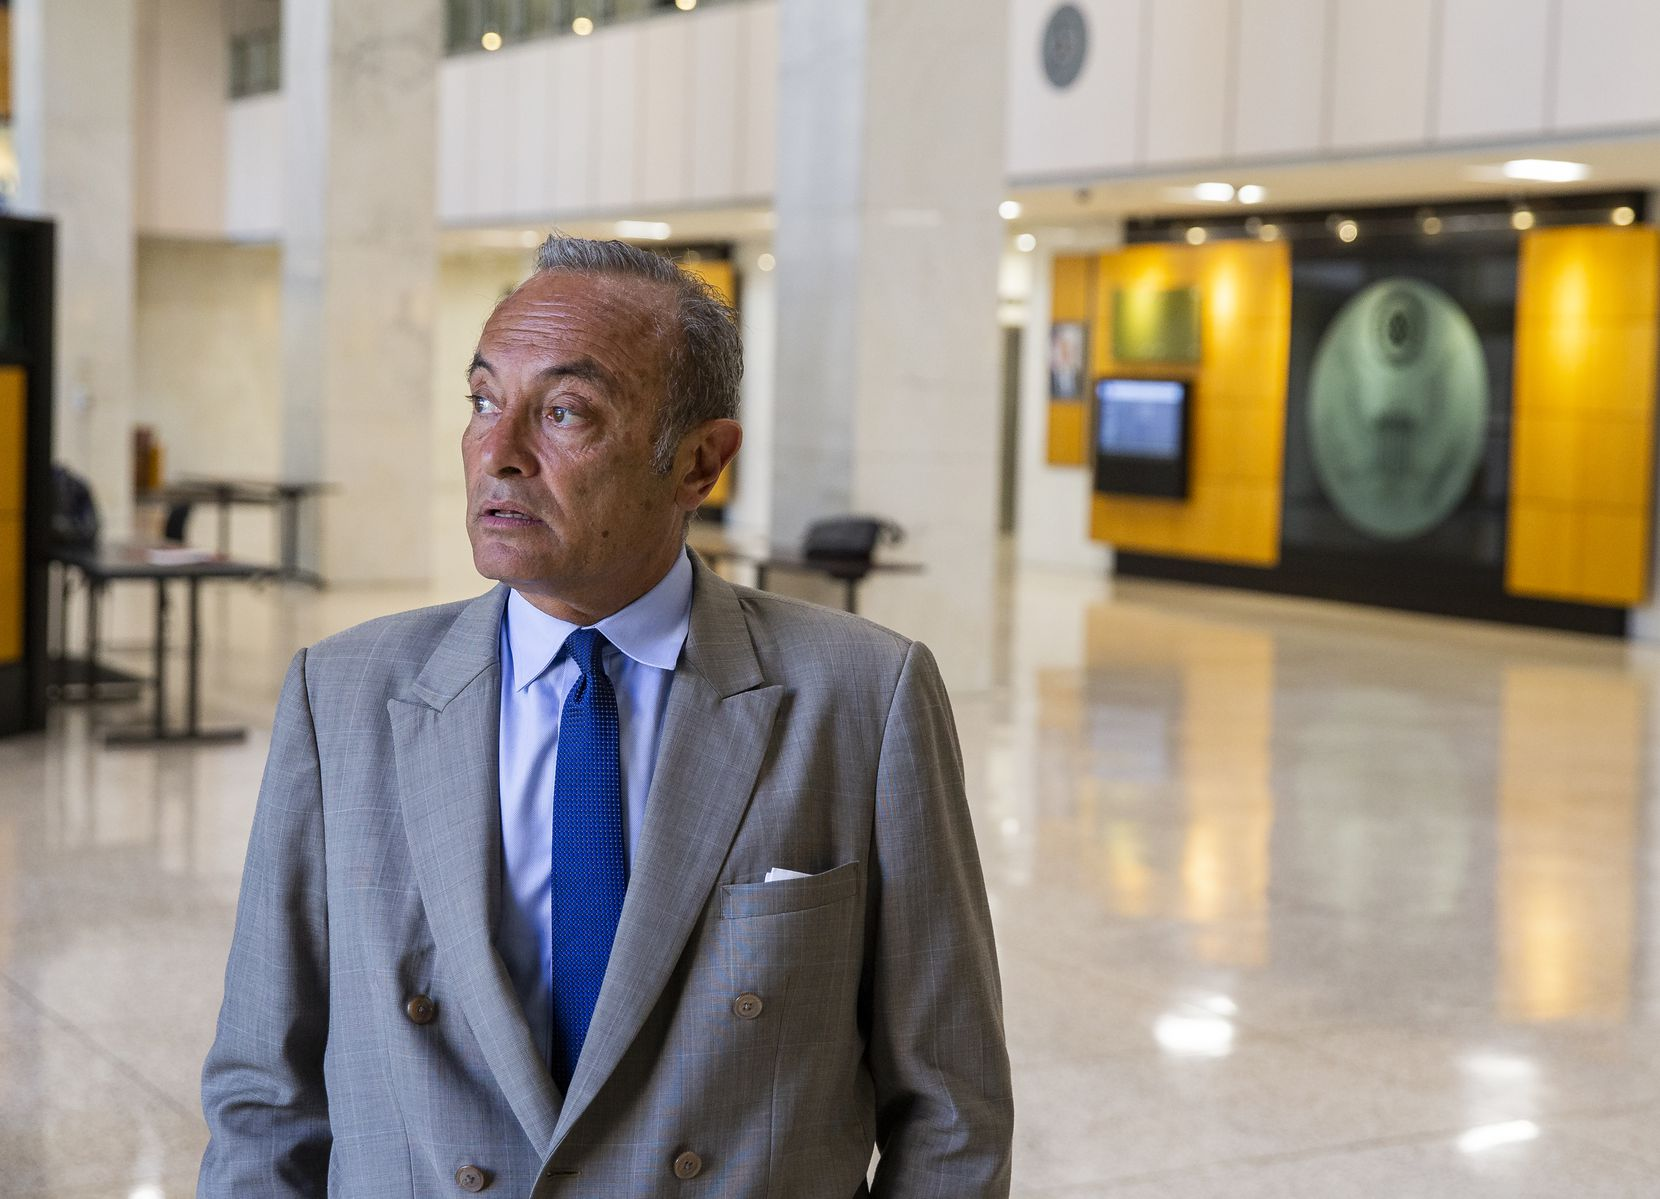 Attorney Fernando Dubove surveys the entrance lobby of the nearly empty Earle Cabell Federal Building Thursday morning on March 26, 2020 in Dallas.